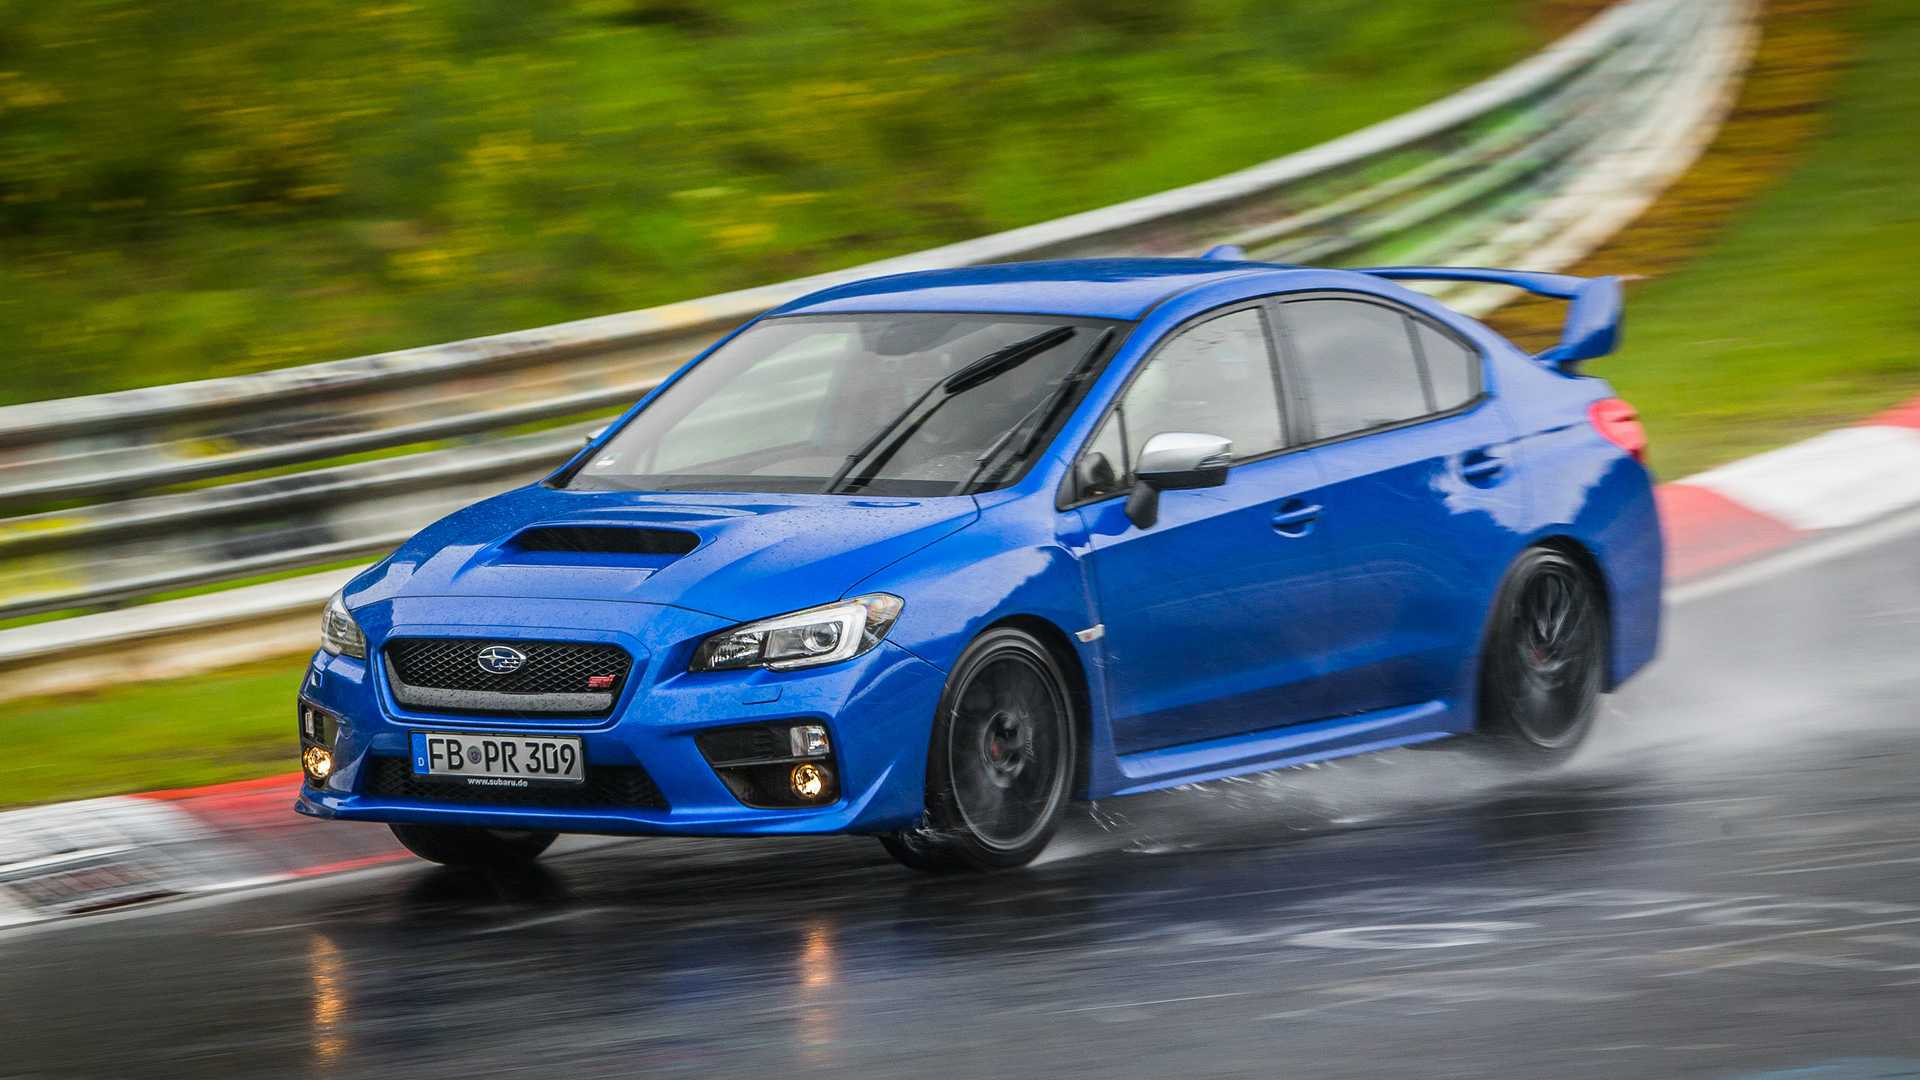 Why The Subaru WRX STI Is Perfect For Lapping The 'Ring In